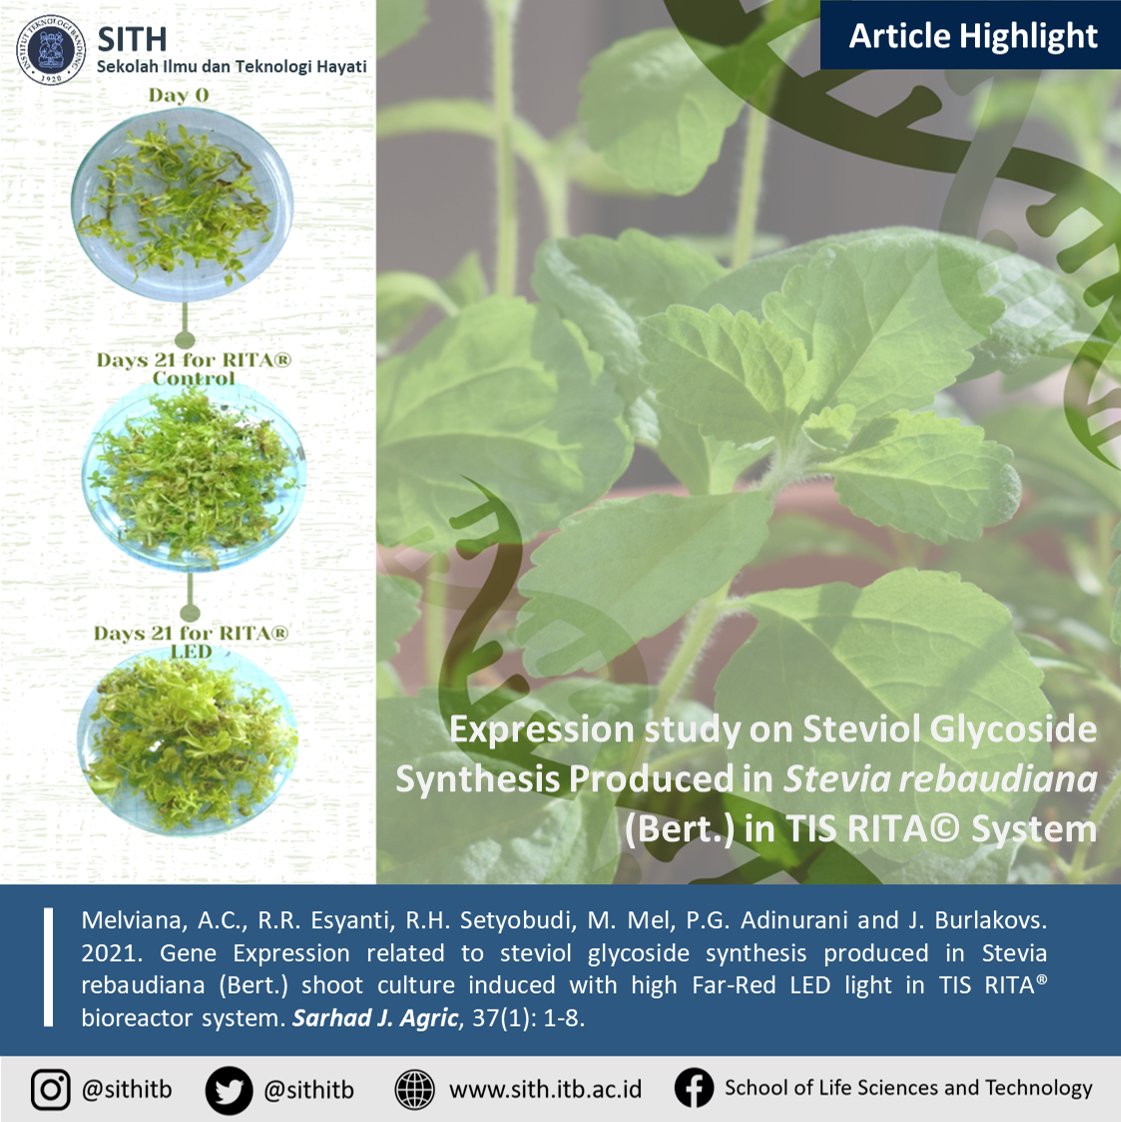 Expression study on Steviol Glycoside Synthesis Produced in Stevia rebaudiana (Bert.) in TIS RITA System